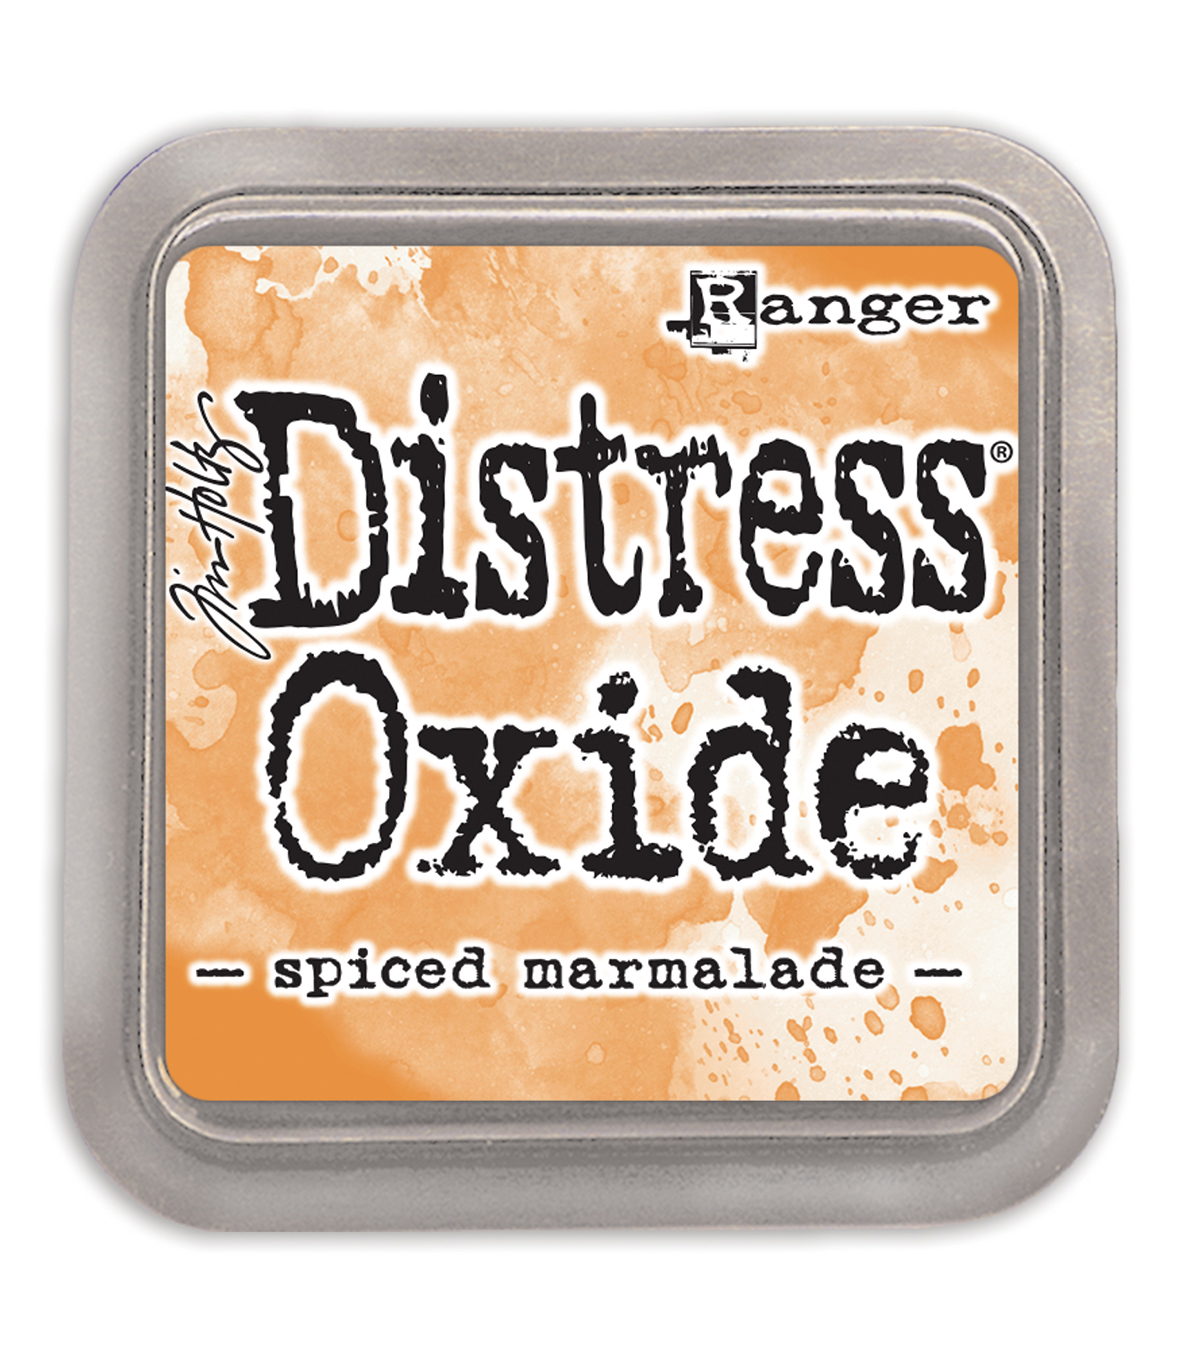 Tim Holtz Distress Oxide Ink Pad, Spiced Marmalade